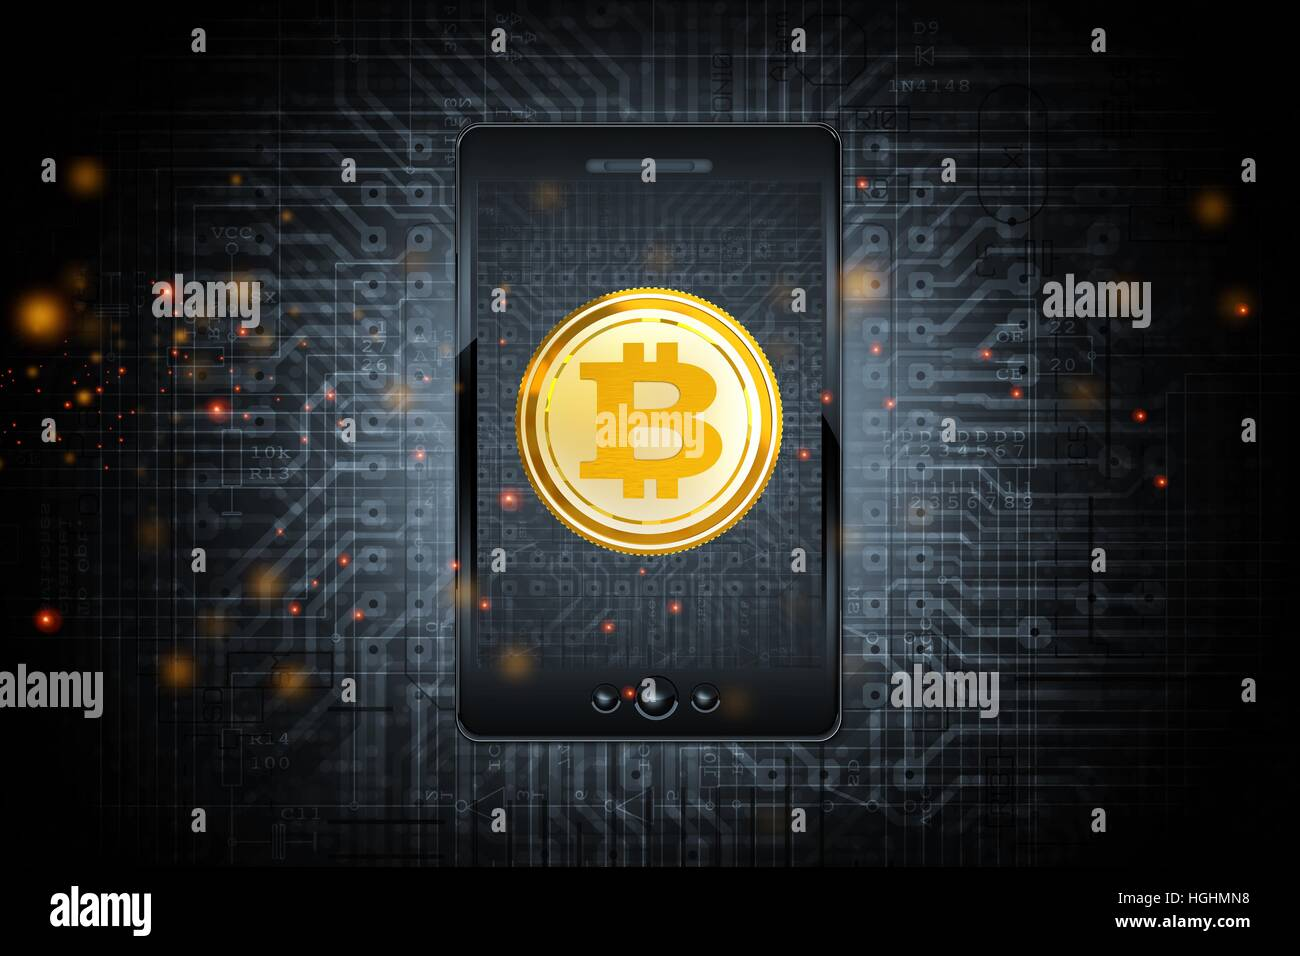 Bitcoin mobile phone transfer via bitcoin trading application bitcoin mobile phone transfer via bitcoin trading application conceptual illustration with smartphone and circuit board background buycottarizona Choice Image